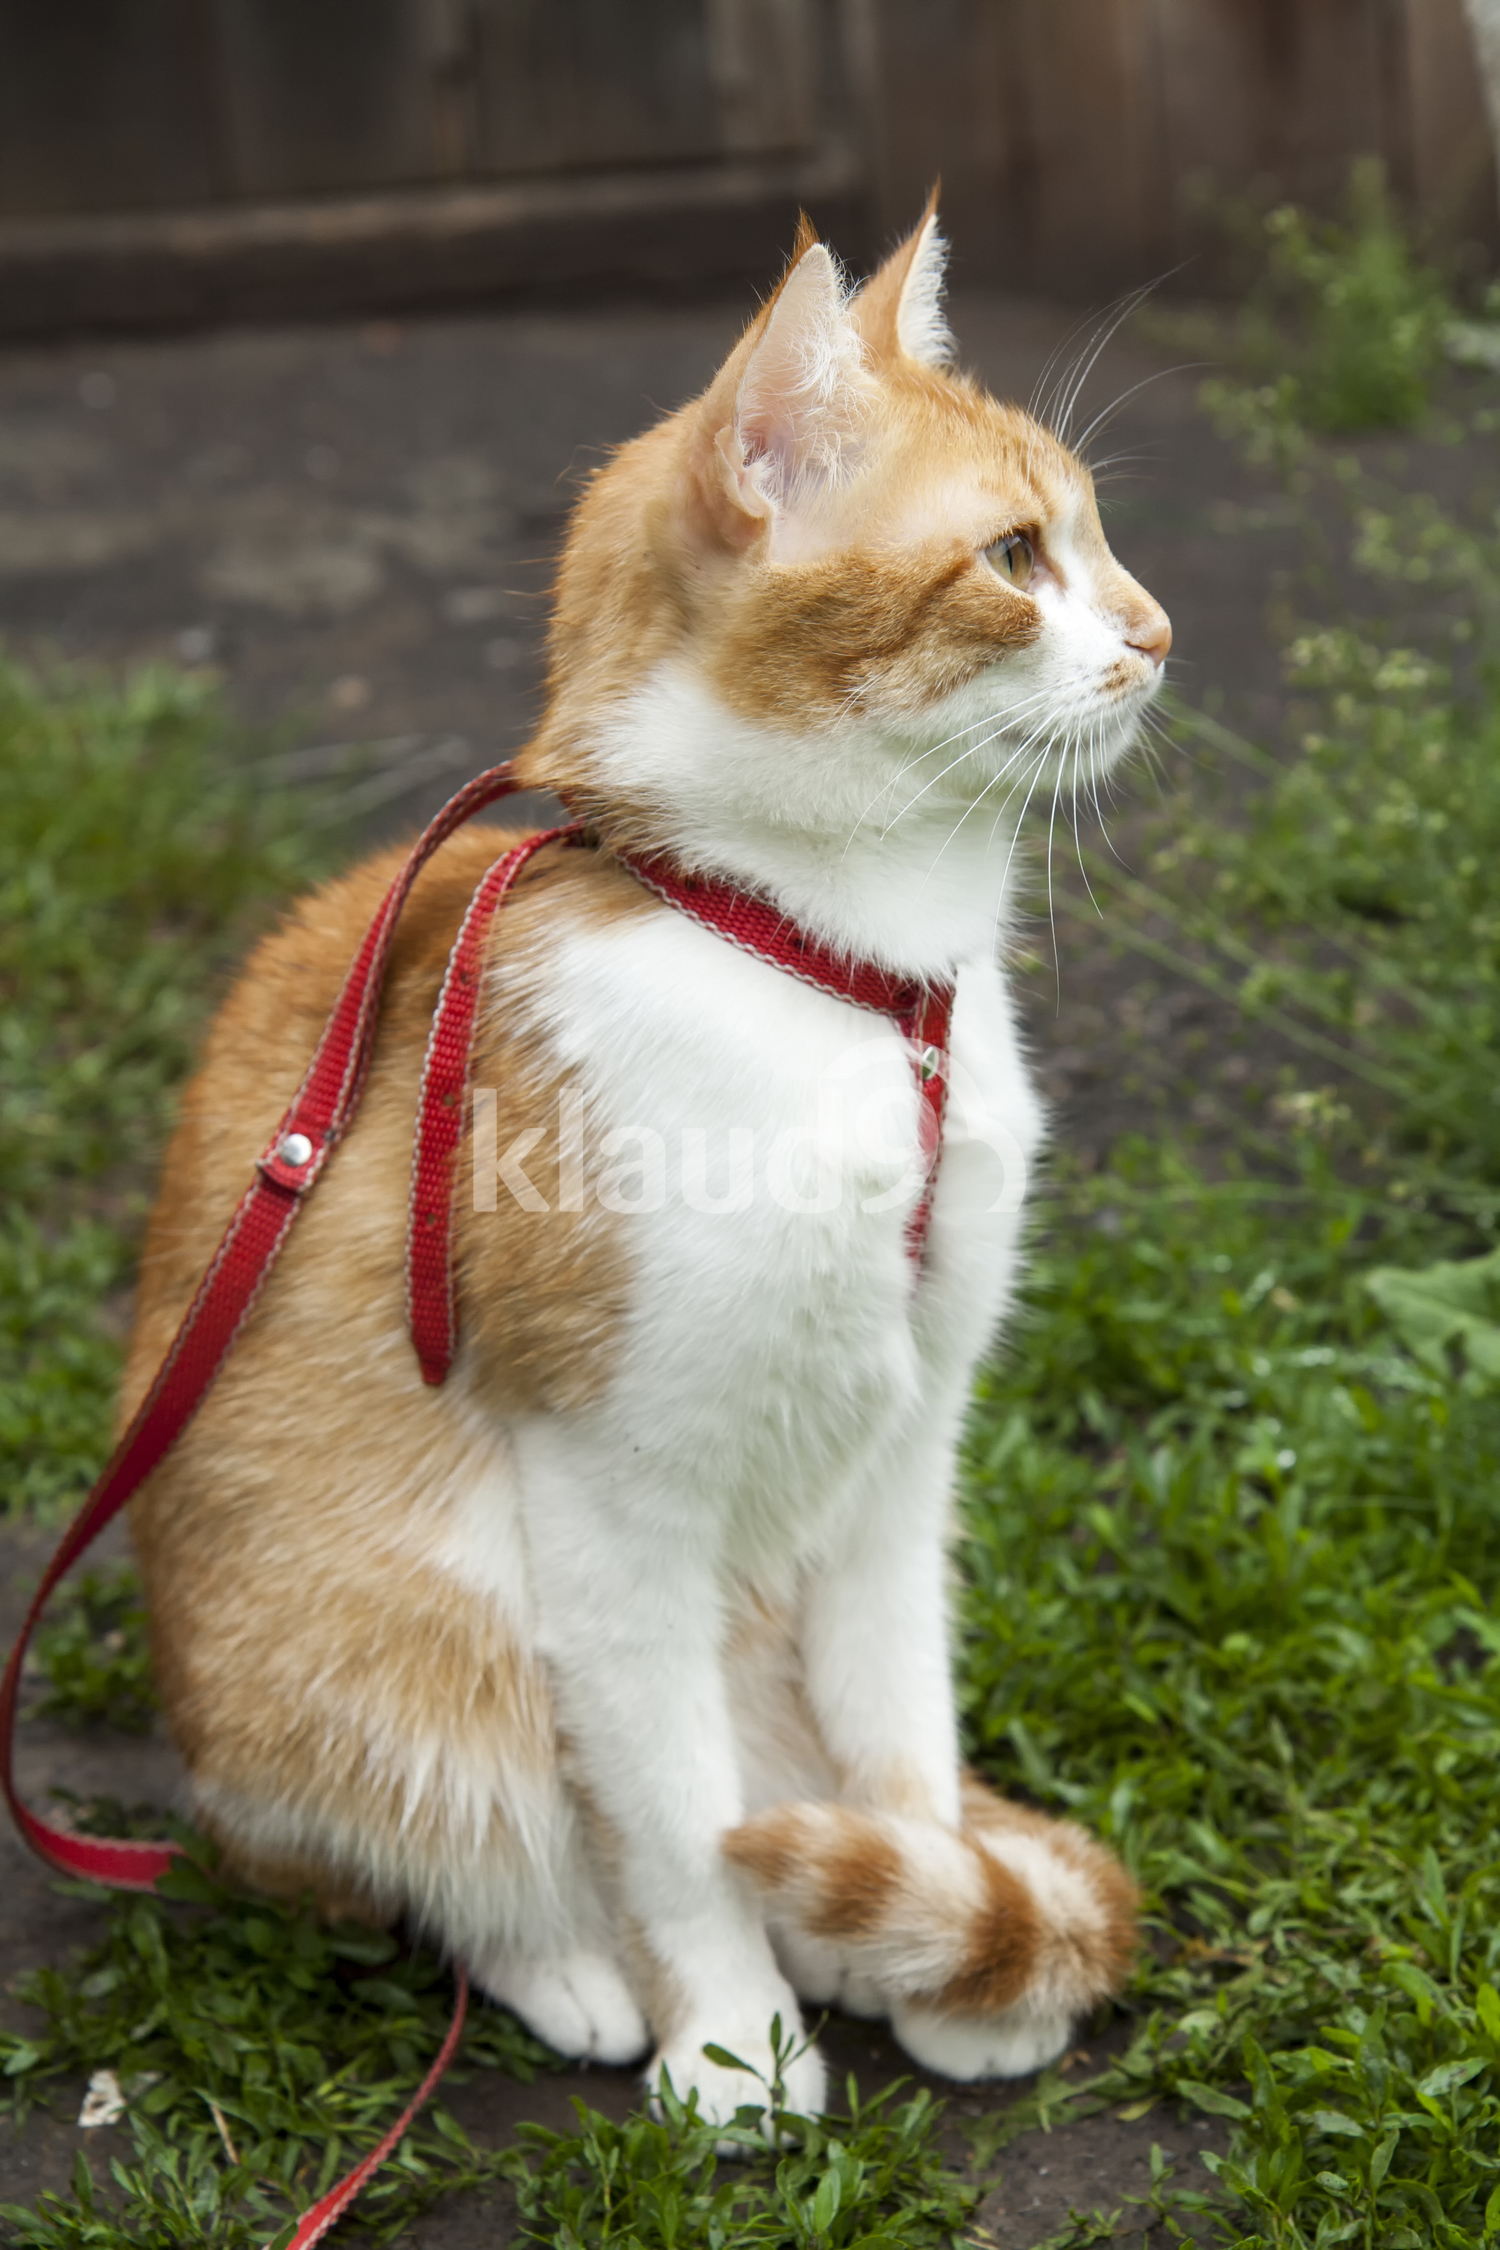 Cute white-red cat in a red collar